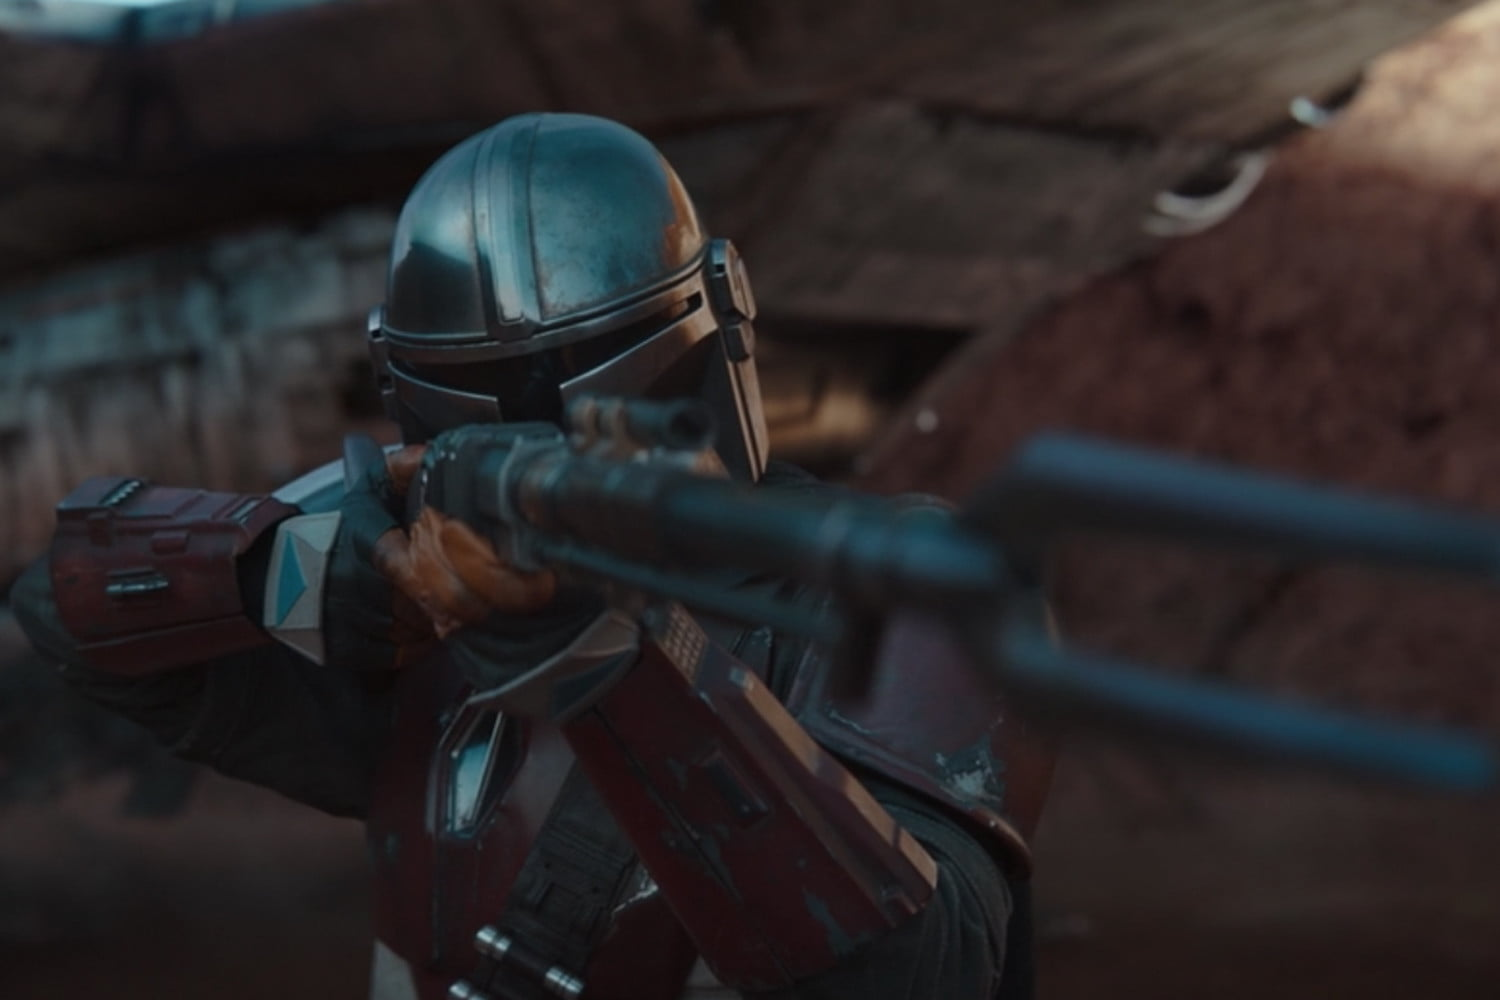 The Mandalorian is pure uncut nostalgia, and that's what makes it great